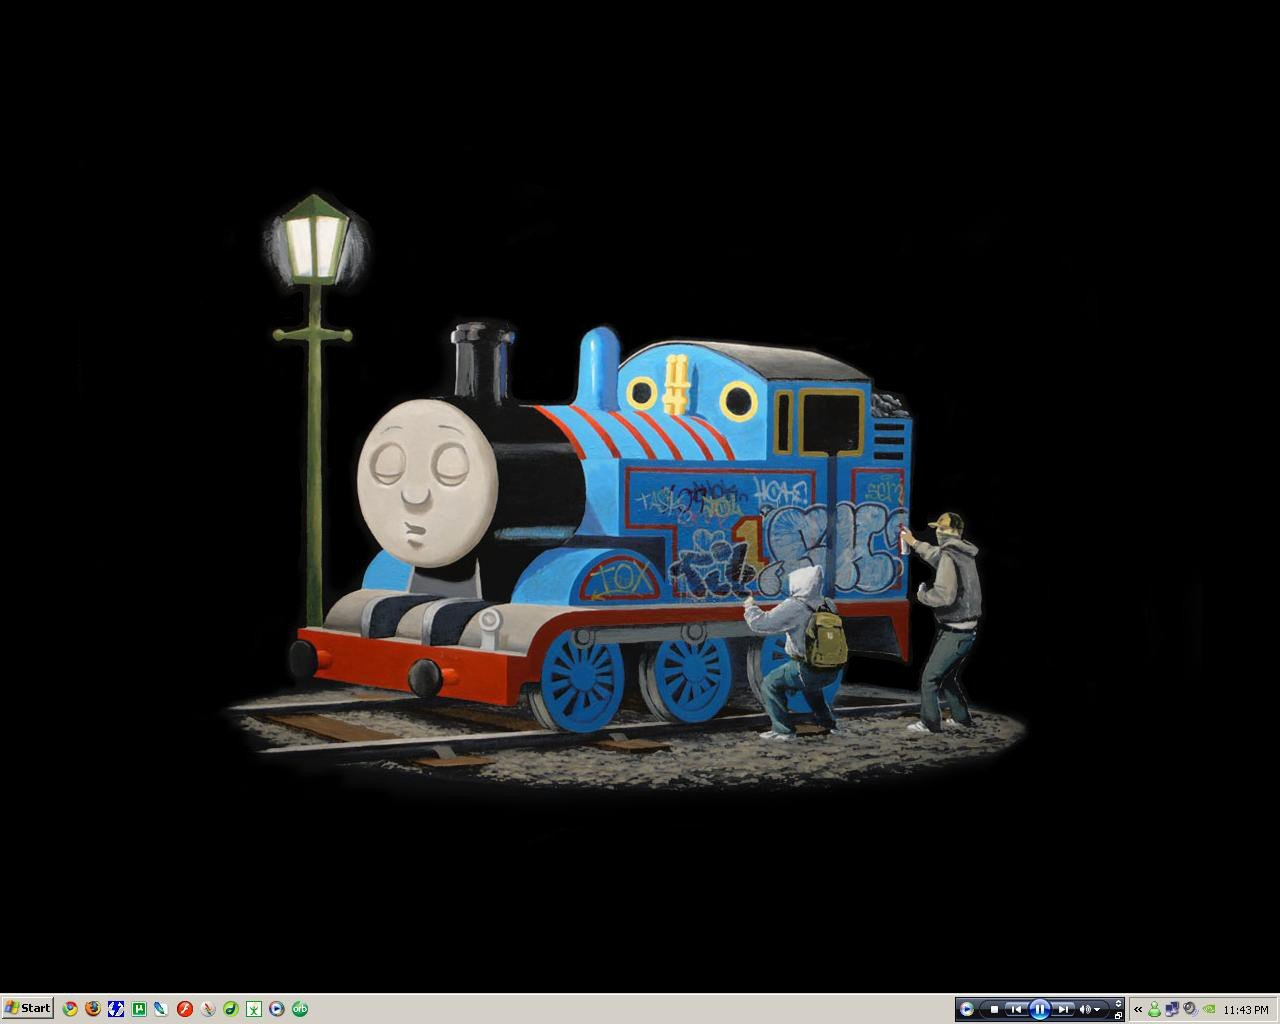 Thomas The Tank Engine Graffiti Hd Wallpapers Desktop And